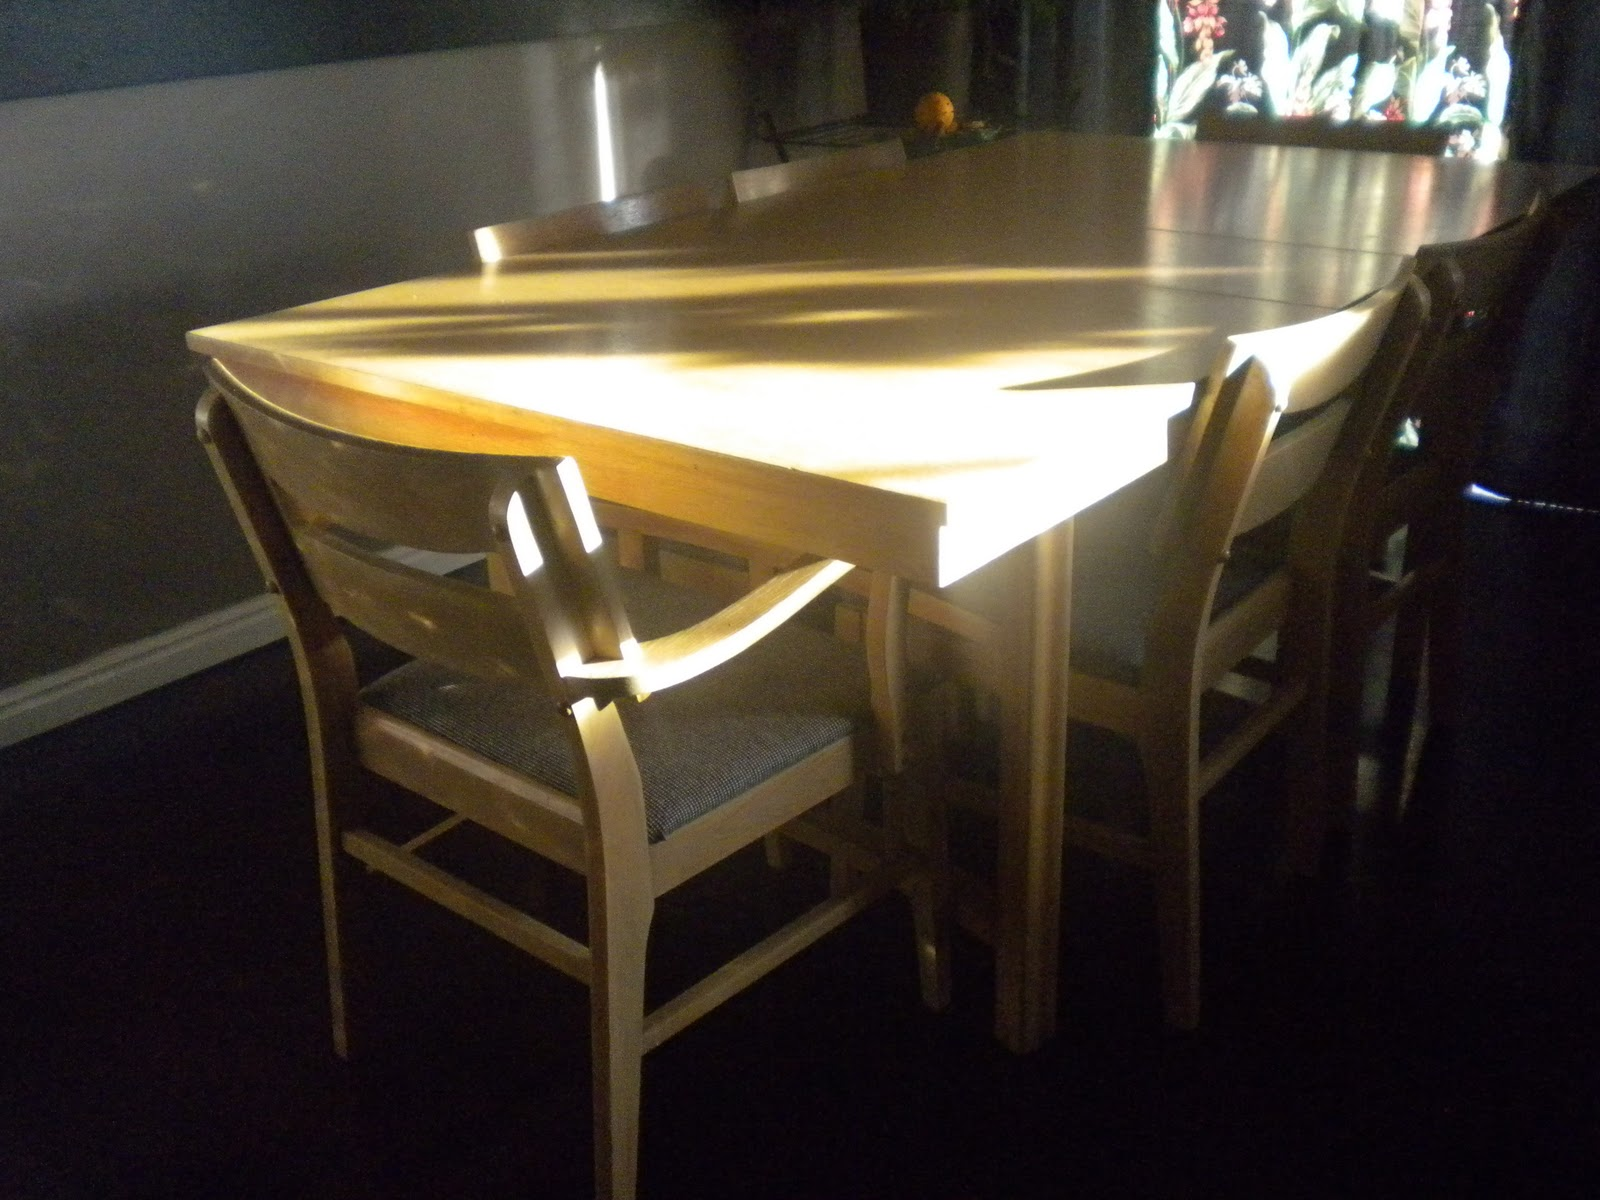 First Up Is A 1950 S Blonde Wood Mid Century Dining Table 300 Email Melanie C21rockies Or Text Call 801 318 7828